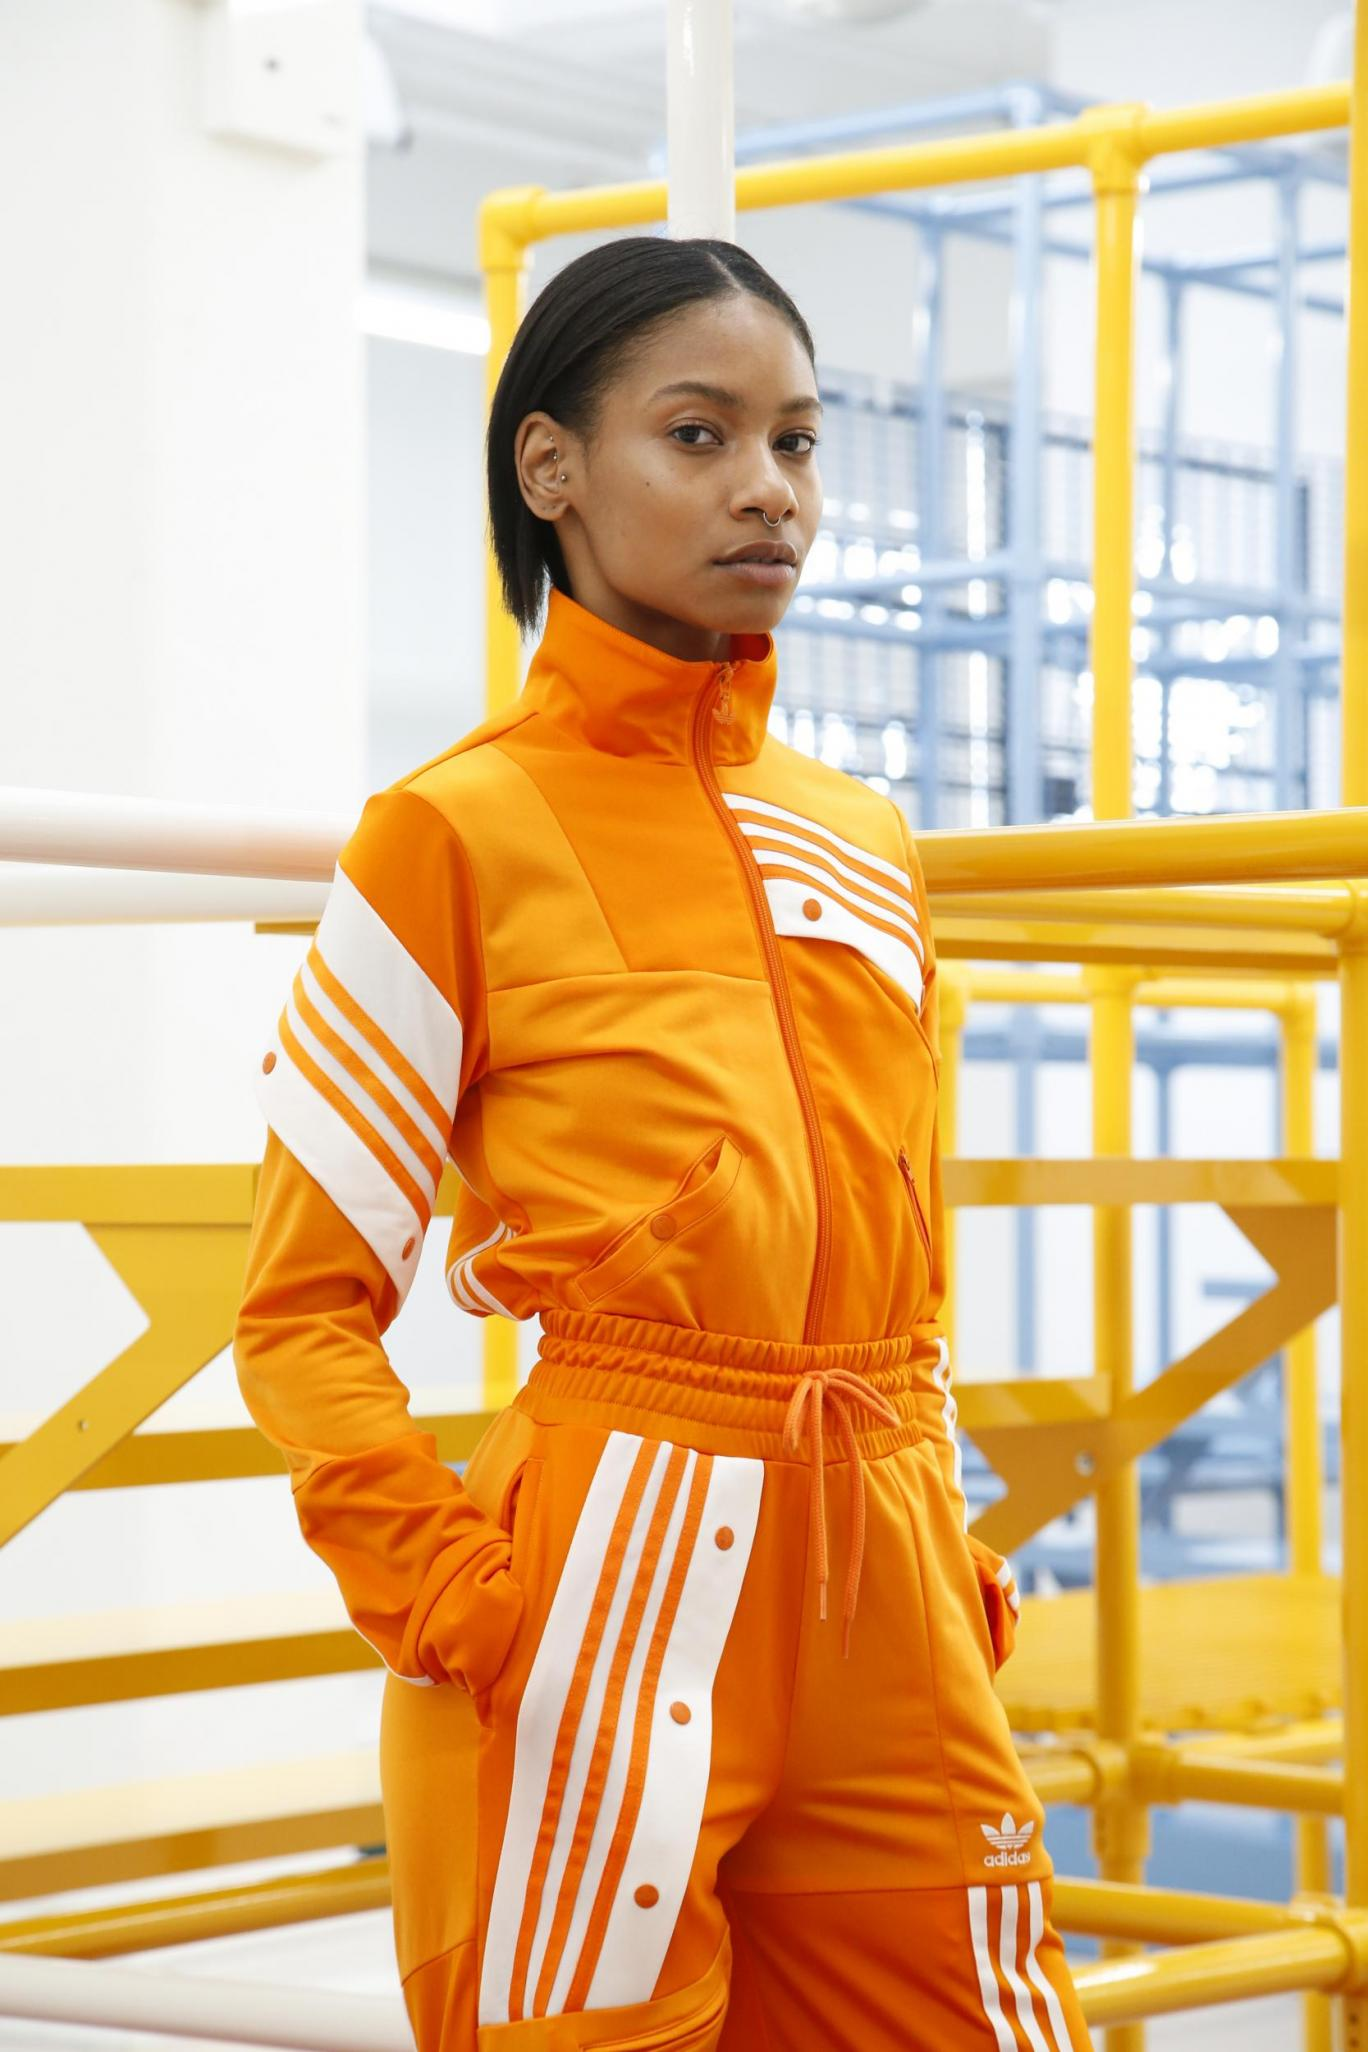 Kendall Jenner Models in adidas Originals' New Tracksuit